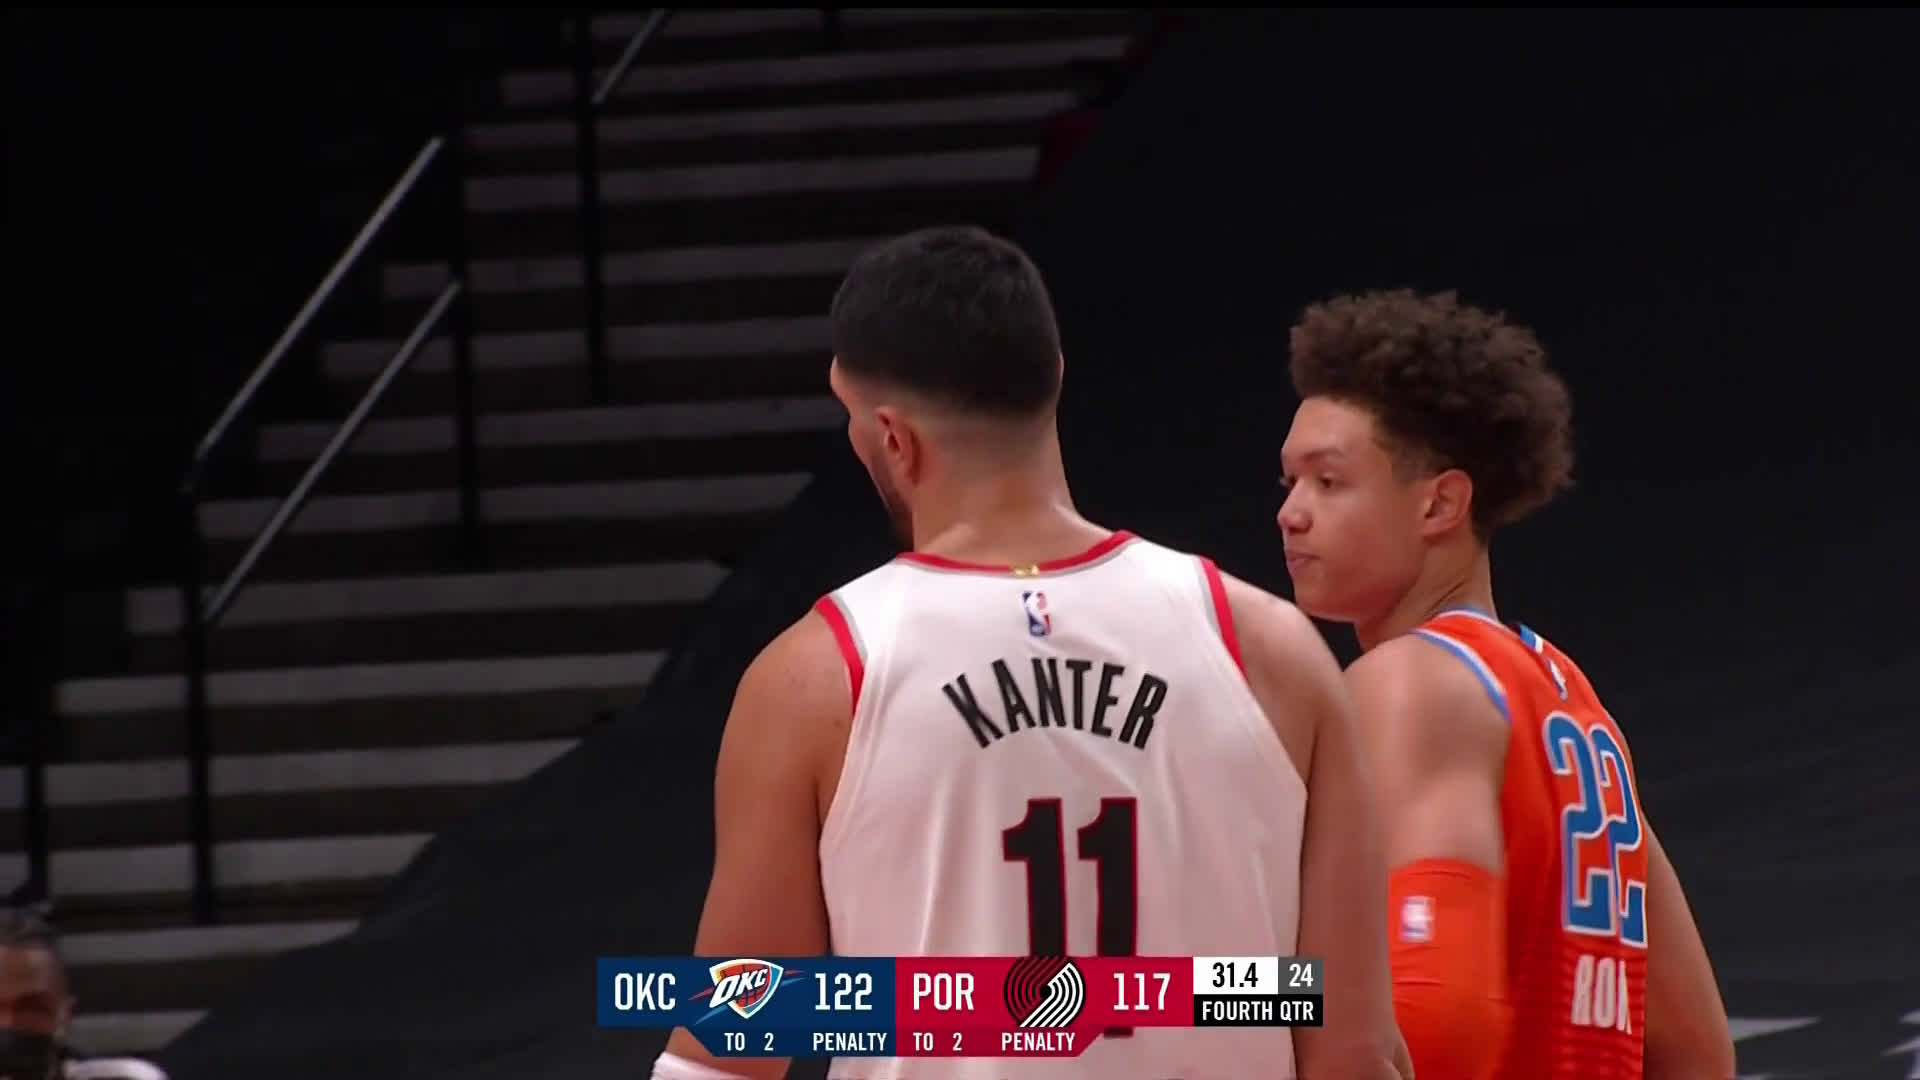 [Highlight] Anfernee misses the three but Kanter is there to catch and put it up in one motion